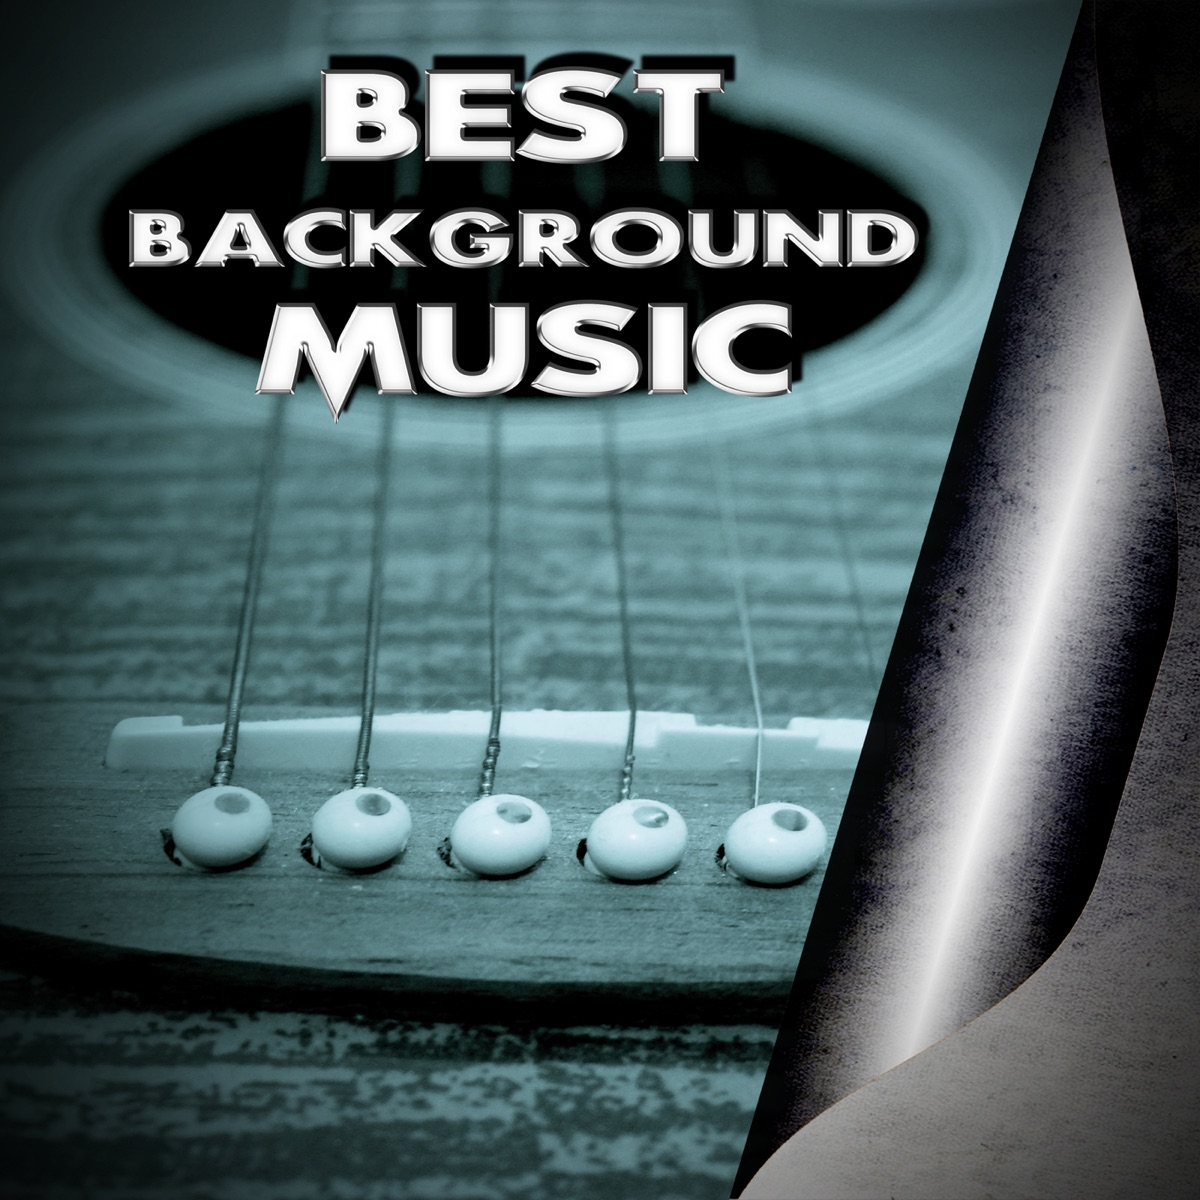 Best Background Music - Acoustic Guitar Music, Relaxing Music to